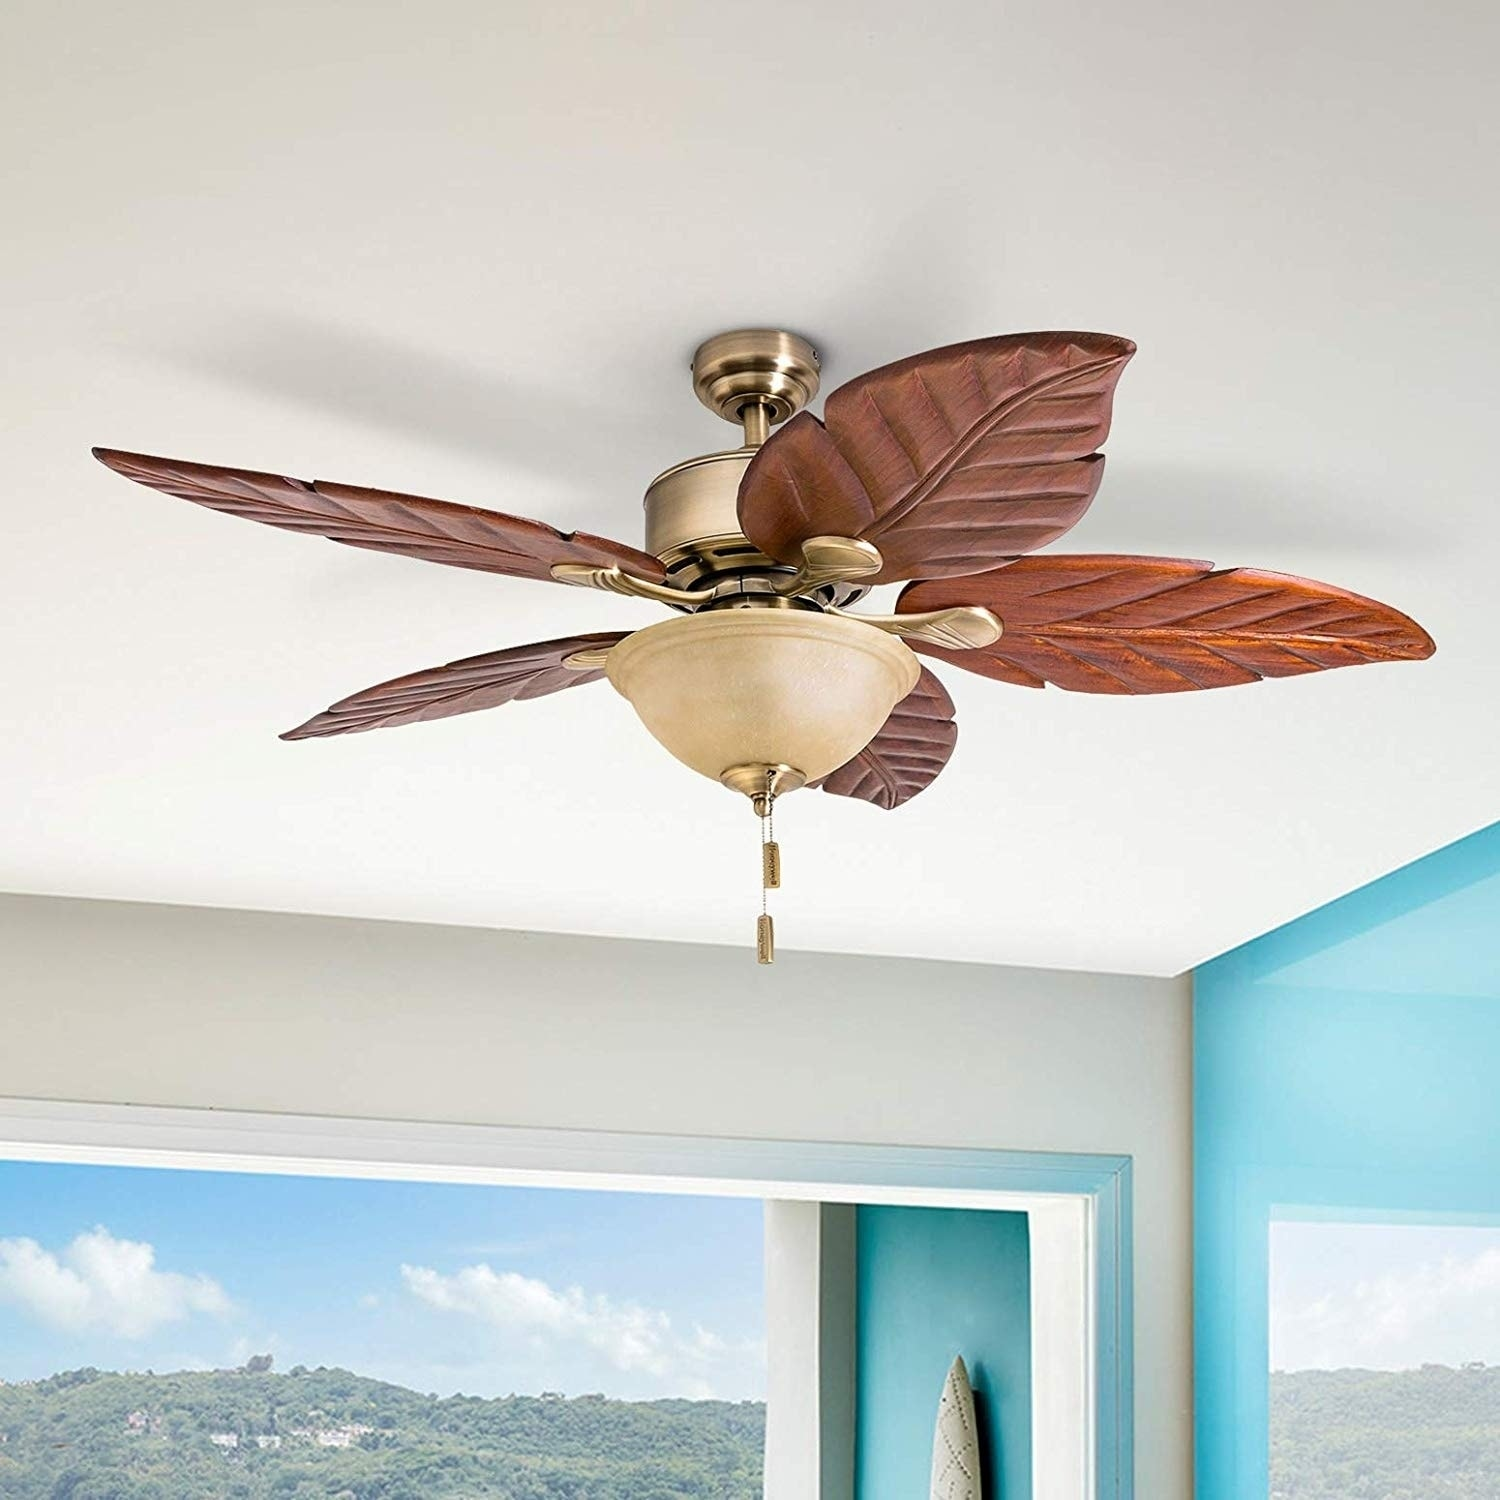 Shop Black Friday Deals On Honeywell Sabal Palm Tropical Led Ceiling Fan With Bowl Light Hand Carved Blades 52 Inch Overstock 22344551